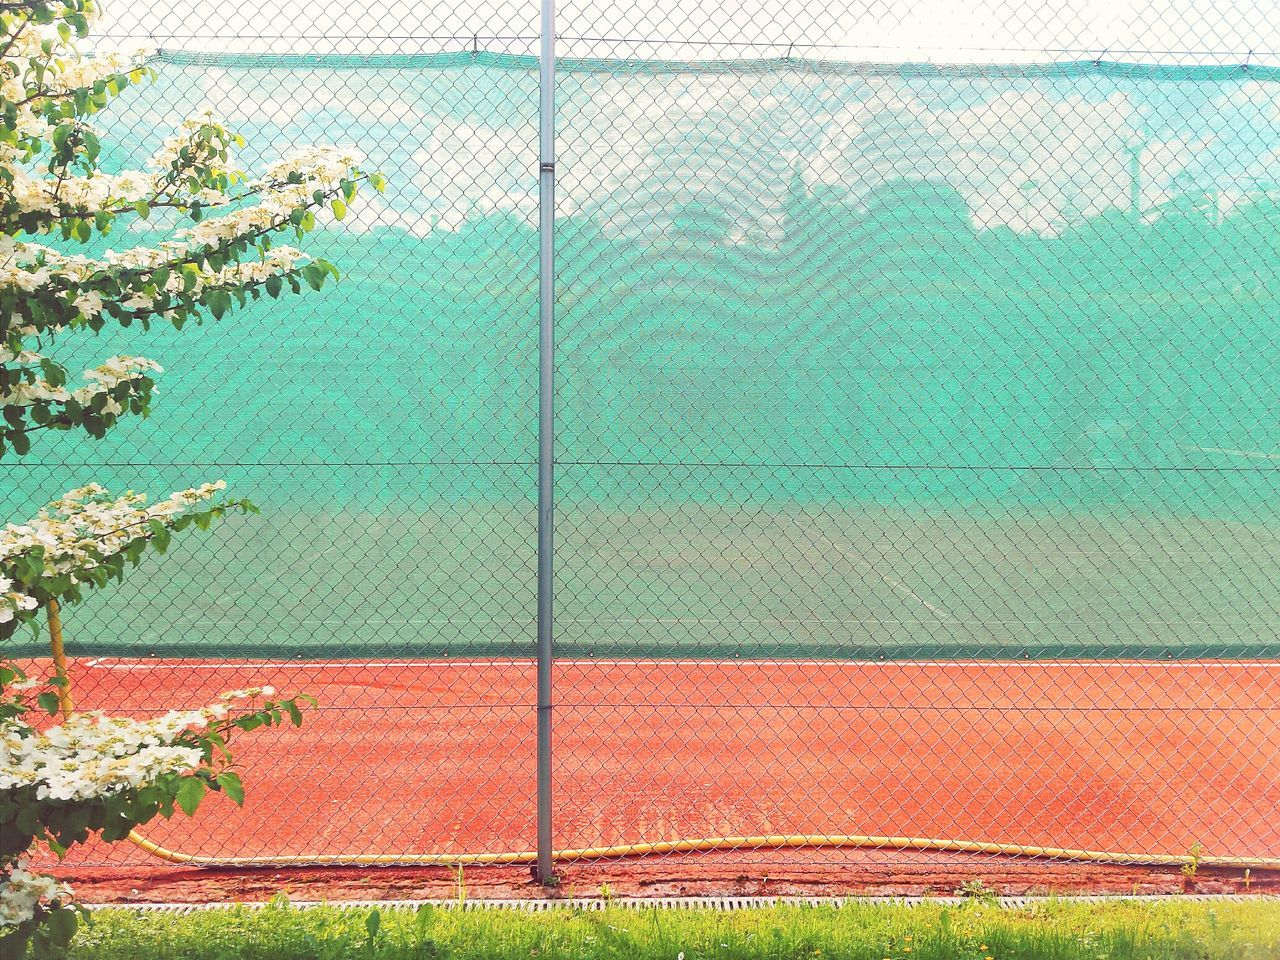 Outside Red Sand Tenniscourt Outdoor Pictures Hanging Out Spring Blossoms Frontal Shot Green Net Viewprotection Viewpoint Tree Branches Urban Nature Urban Silhouettes Urban Outlines City Conture Urban Spring Fever